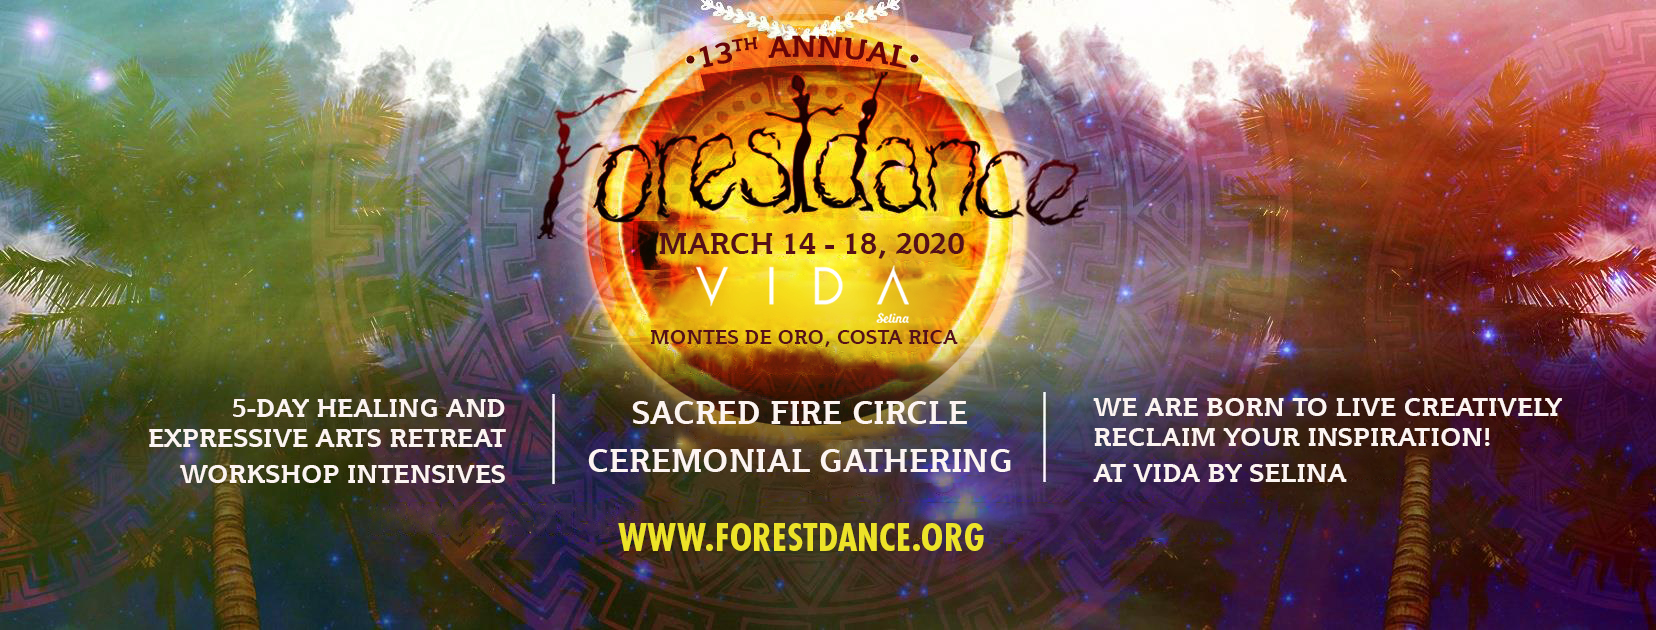 Tickets for Forestdance Costa Rica | March 14-18 in Miramar from BrightStar Live Events